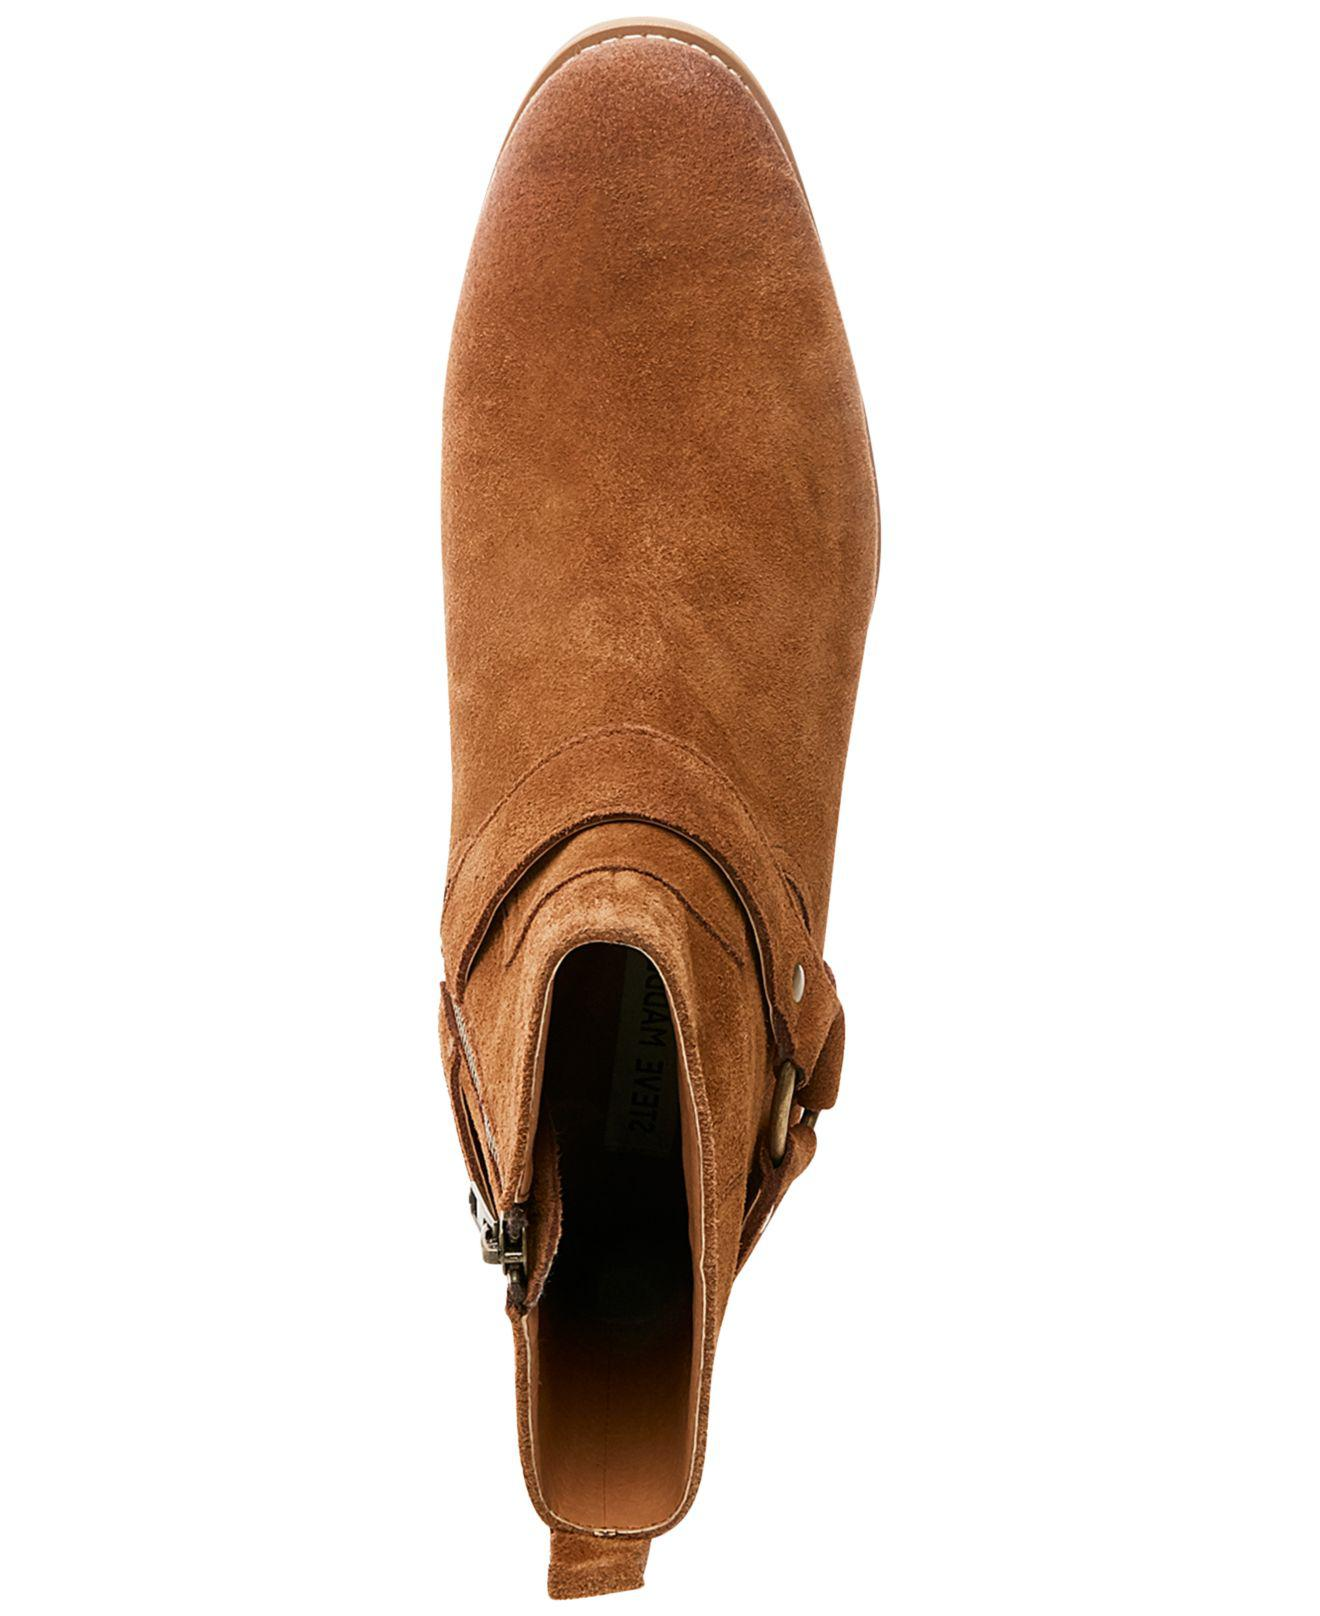 df3f12e2f80 Lyst - Steve Madden Men s Palazzo Side-zip Boots in Brown for Men